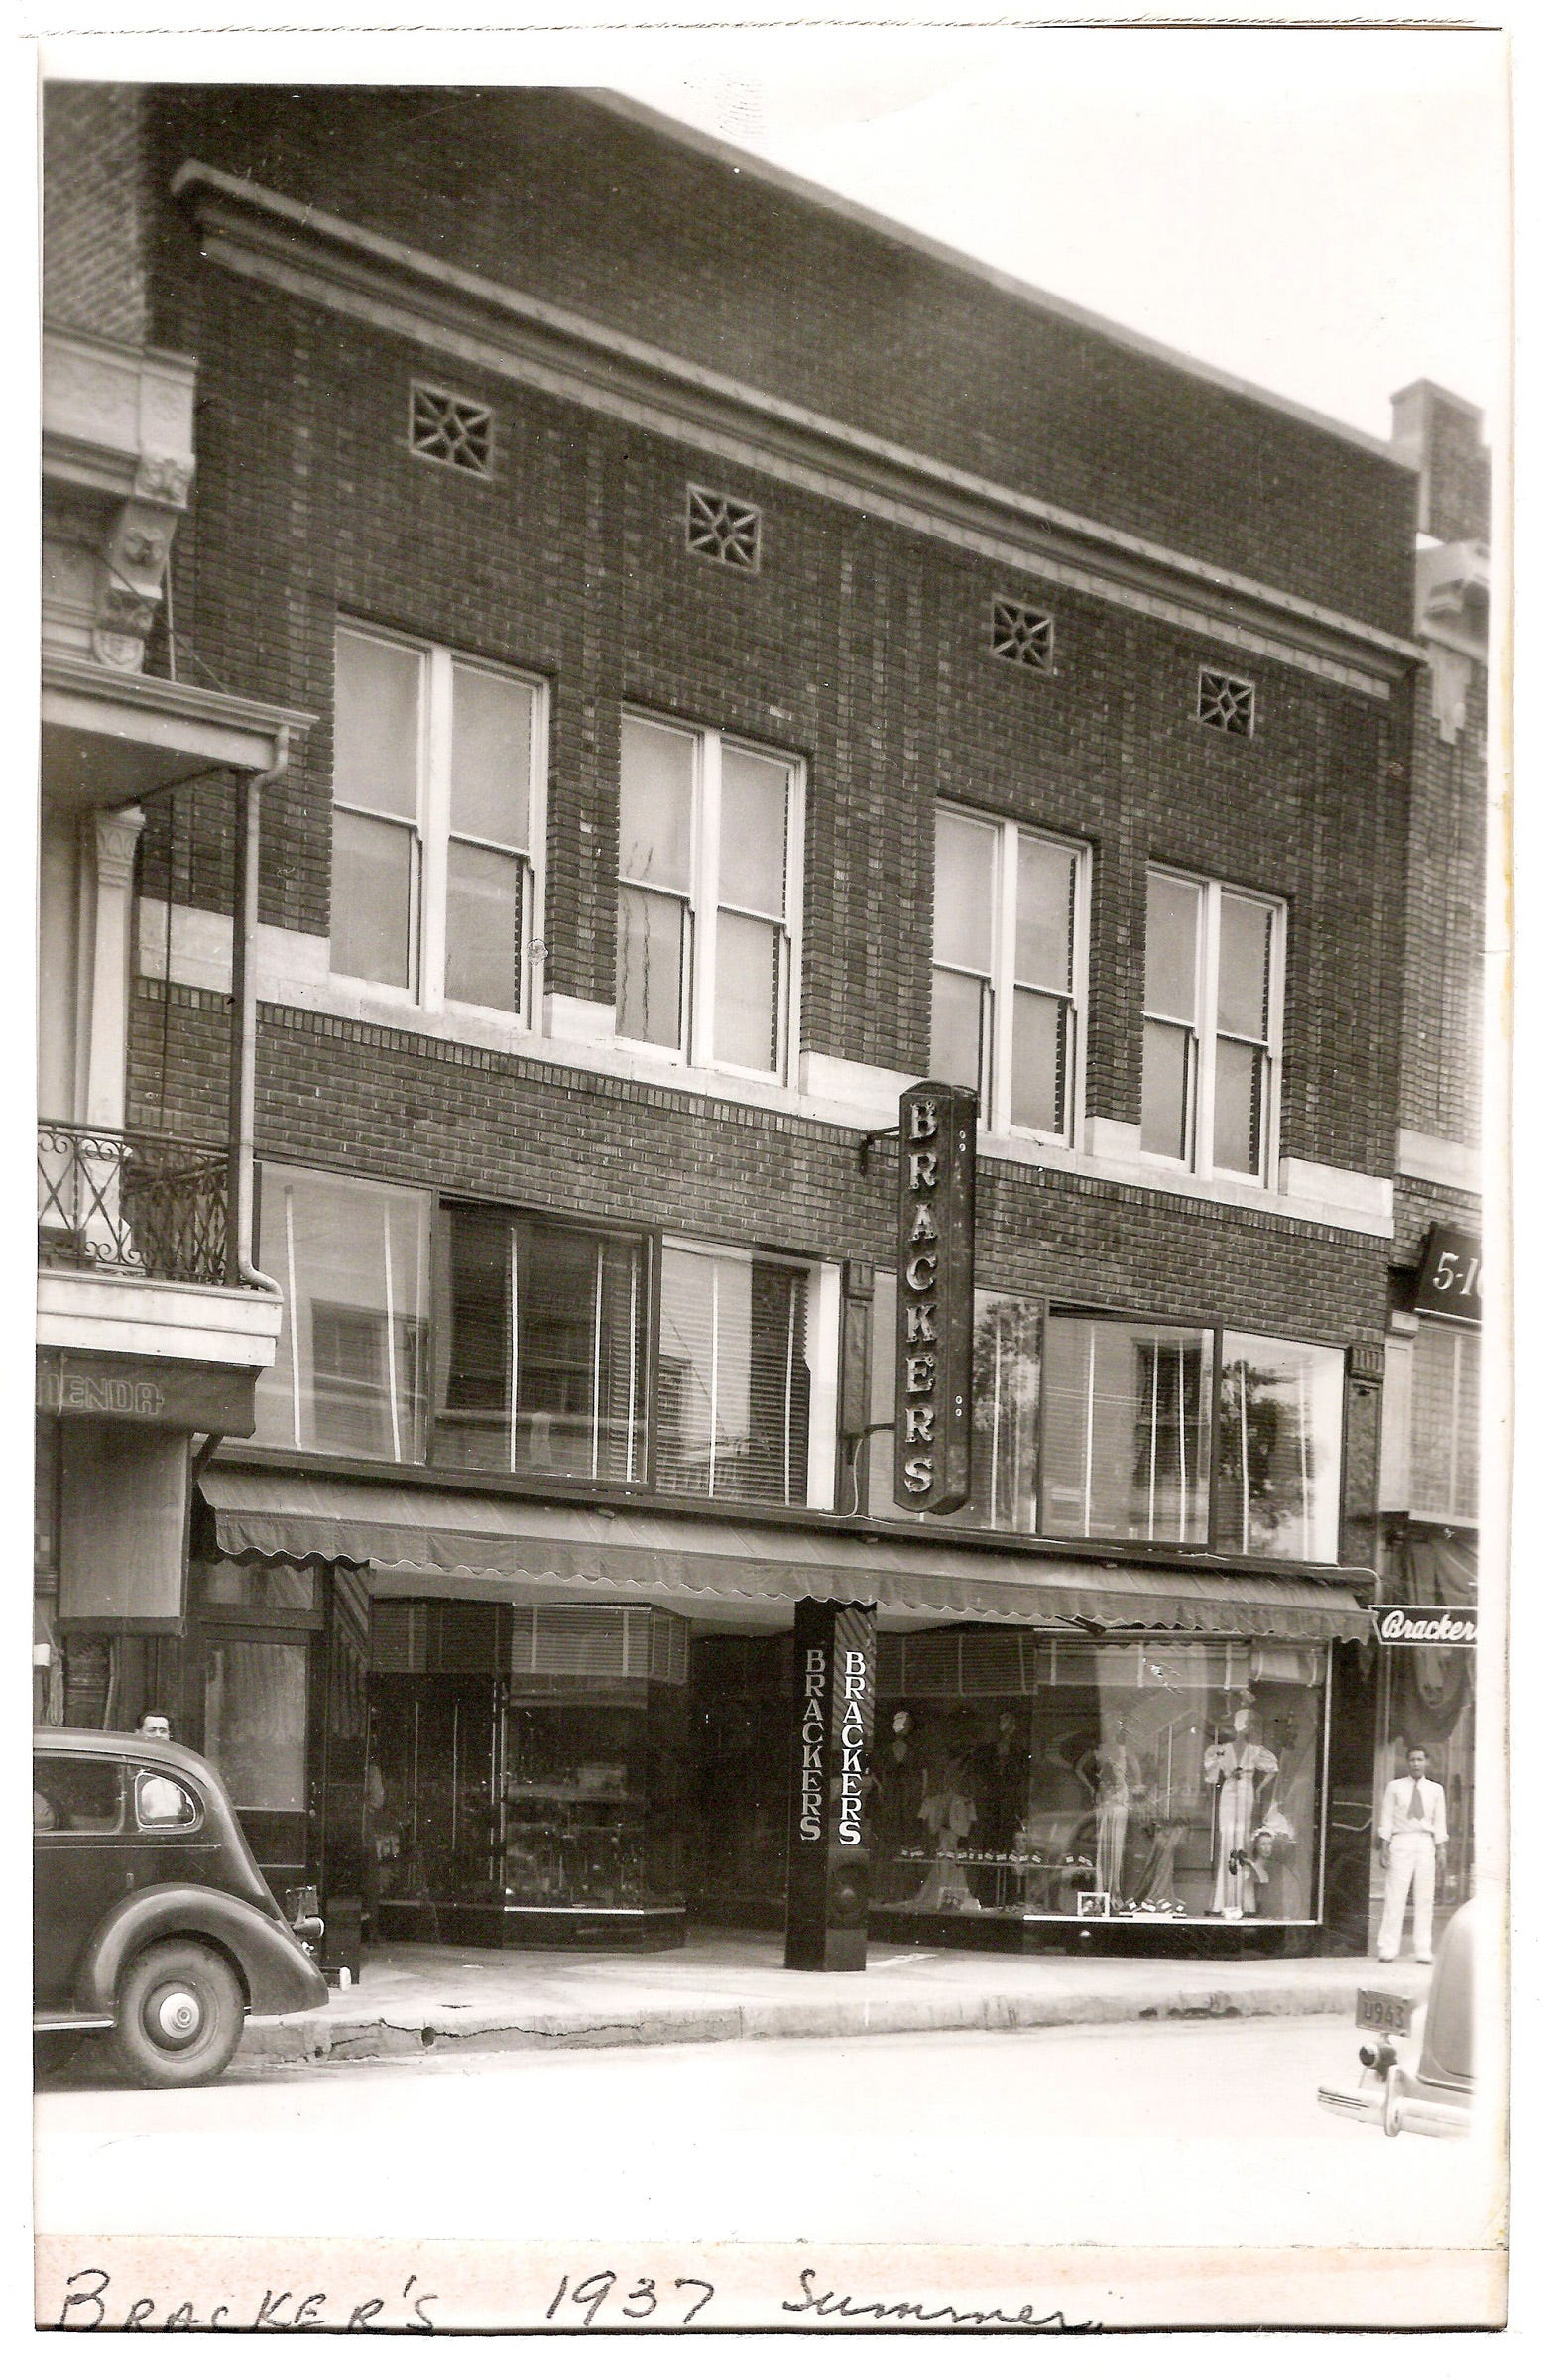 An archive photos of Bracker's third location, in 1937.